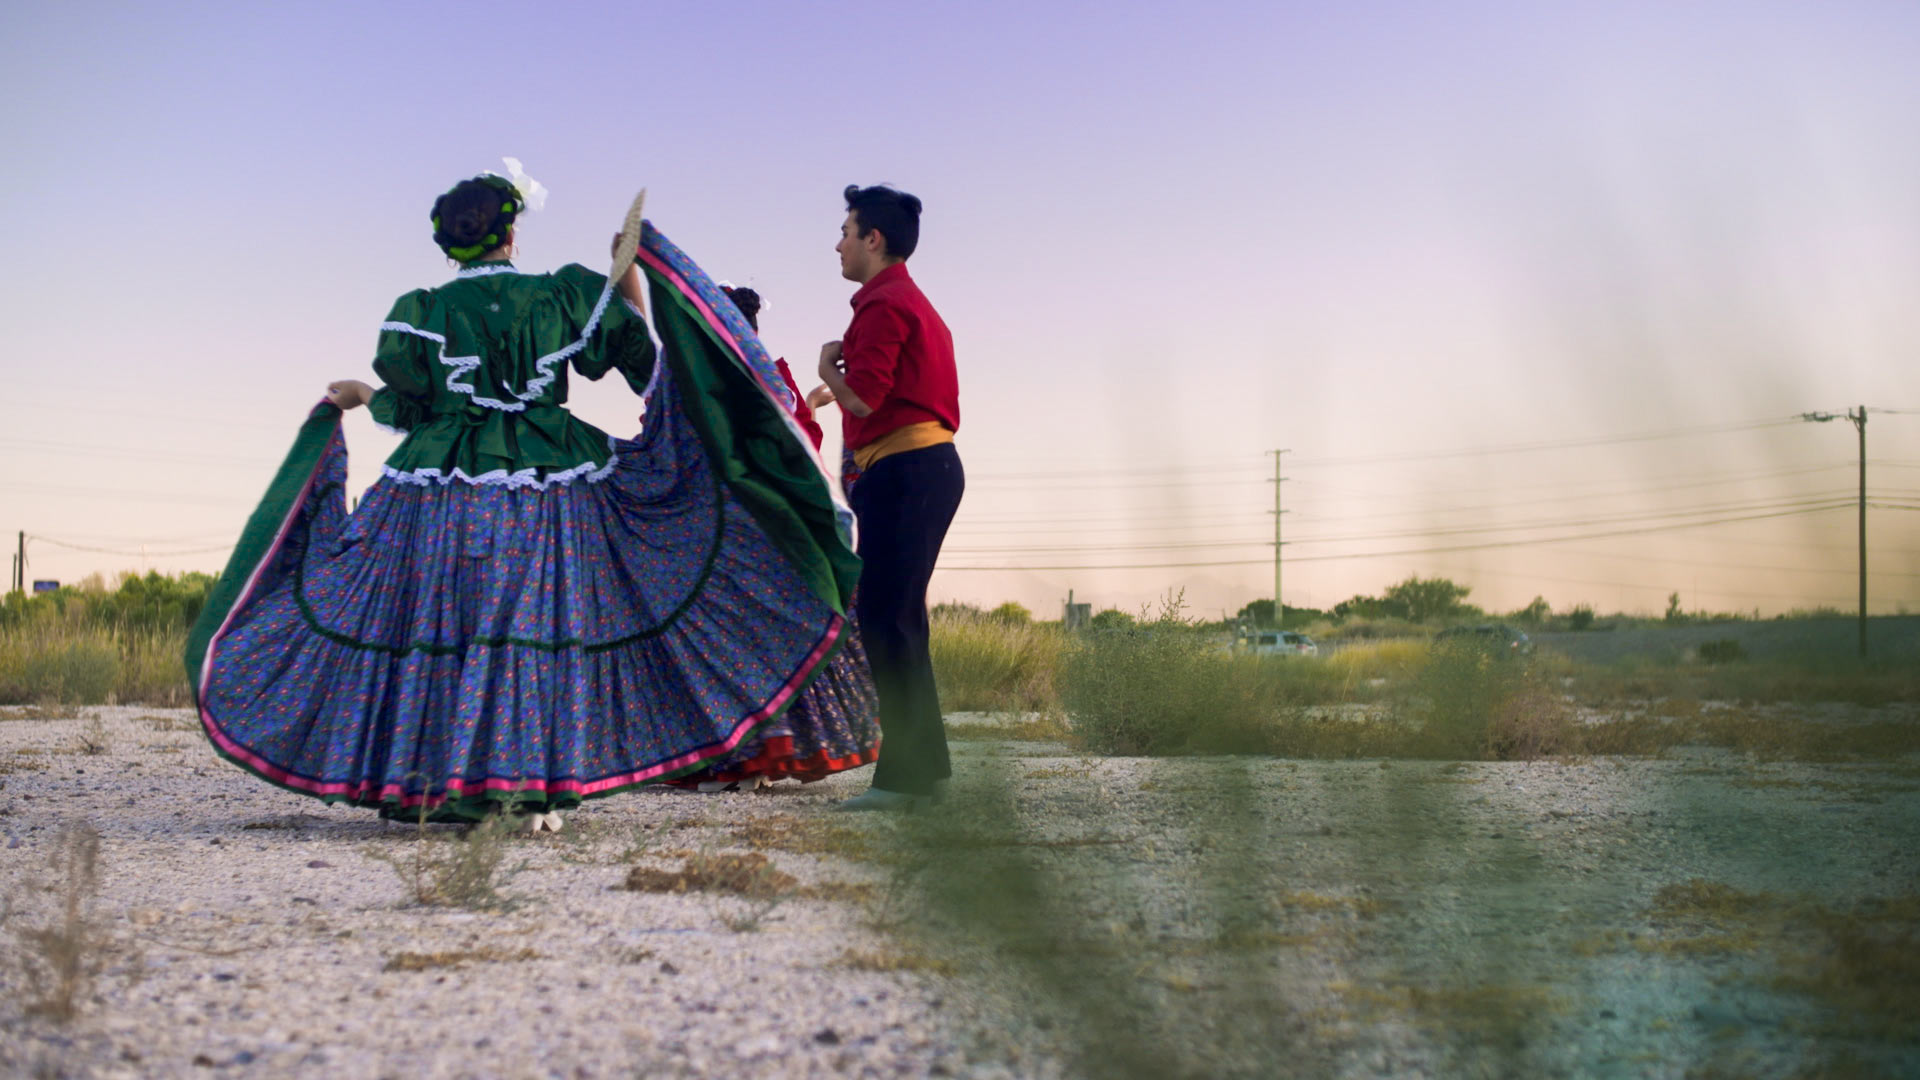 Foklórico dancers in Tucson, Arizona, 2017.